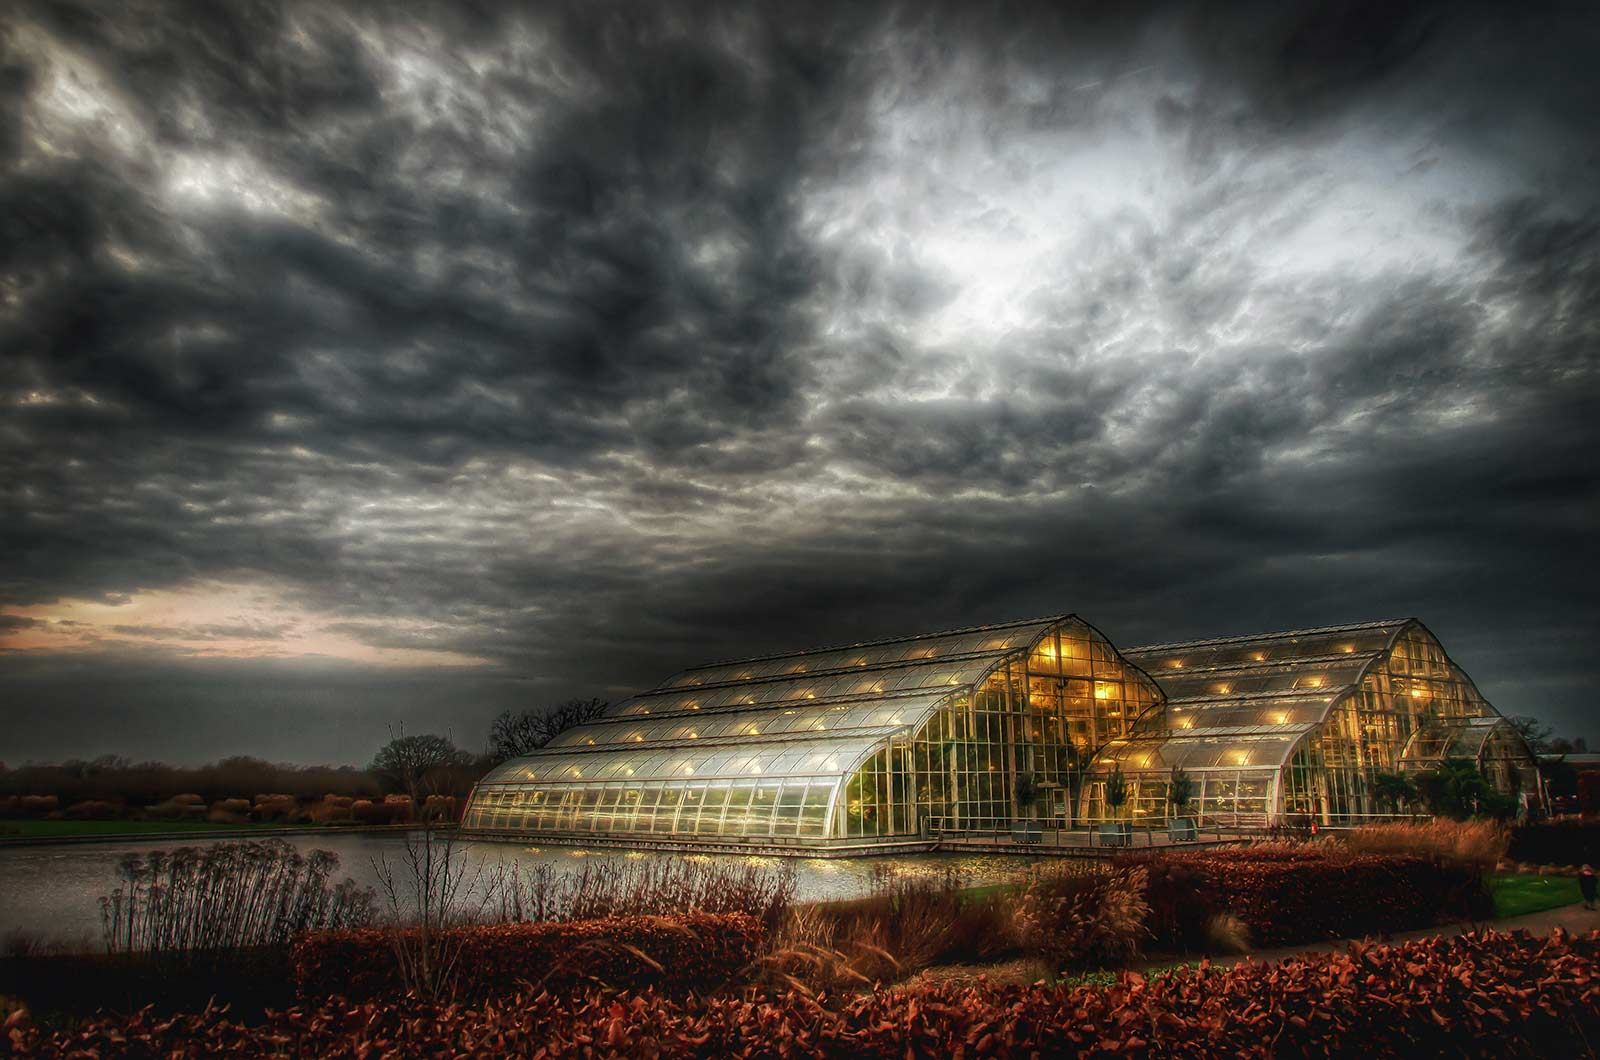 Stormy Sunset, © Stephen Reed, Winner in category Celebrating RHS Gardens, RHS Photographic Competition / RHS Gardening